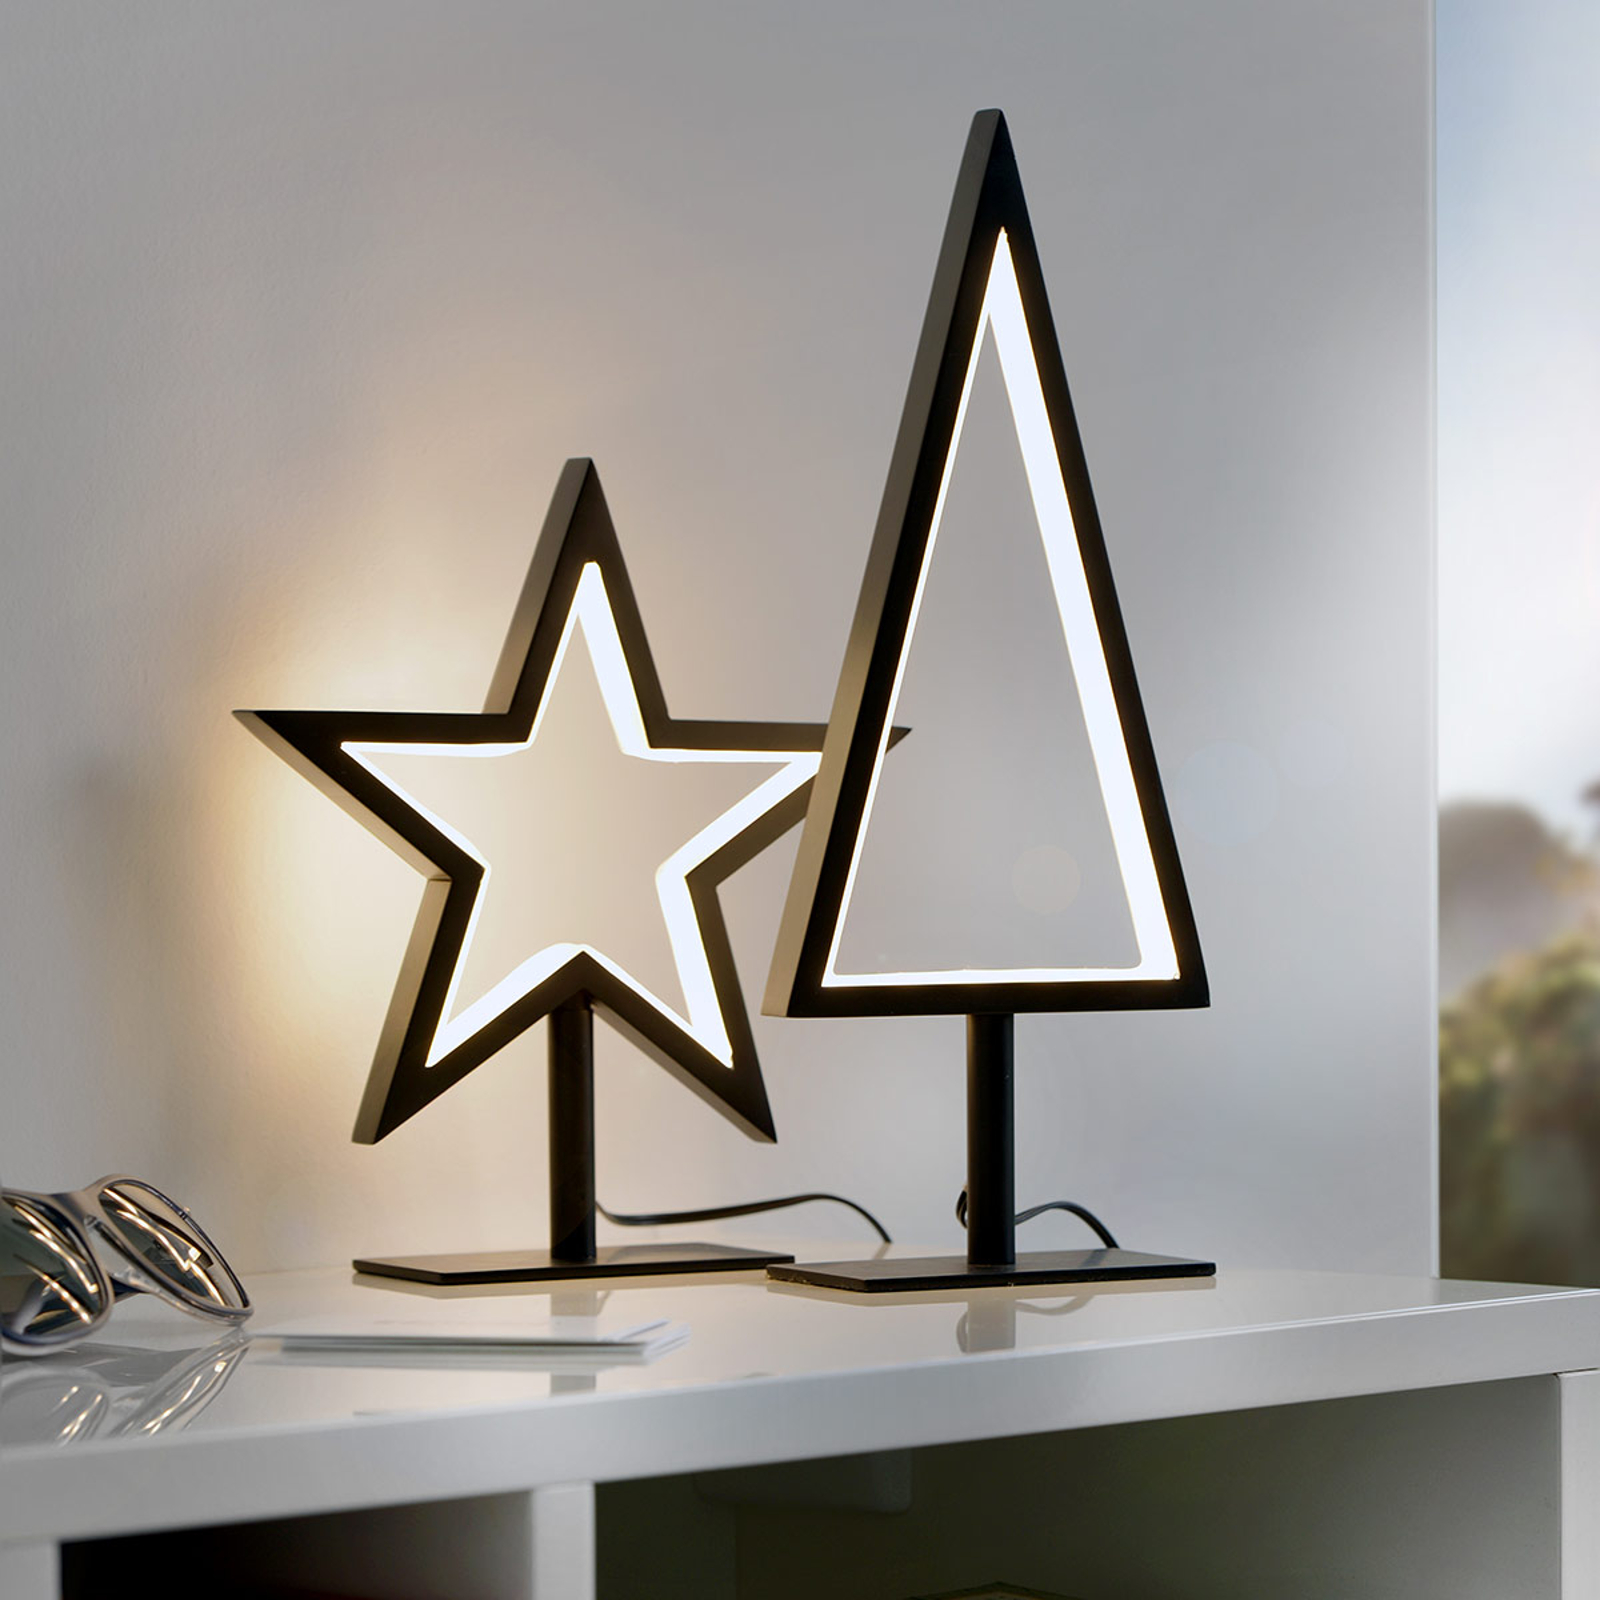 Standing decorative star Lucy-S_8507664_1